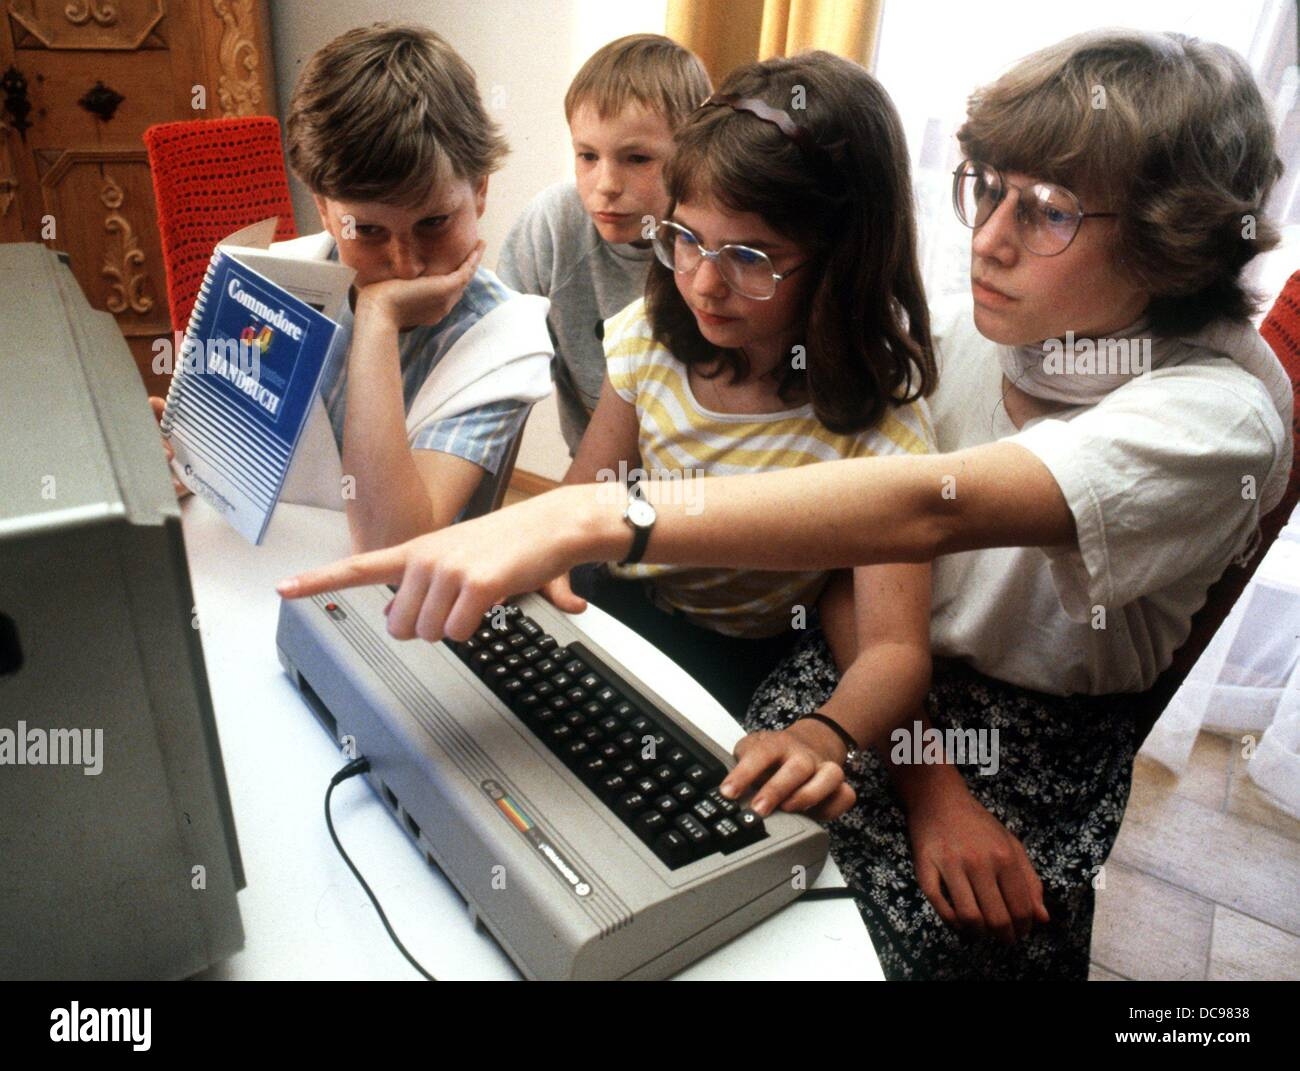 Adolescents try out a Commodore 64 in Nuremberg in May 1985. Stock Photo